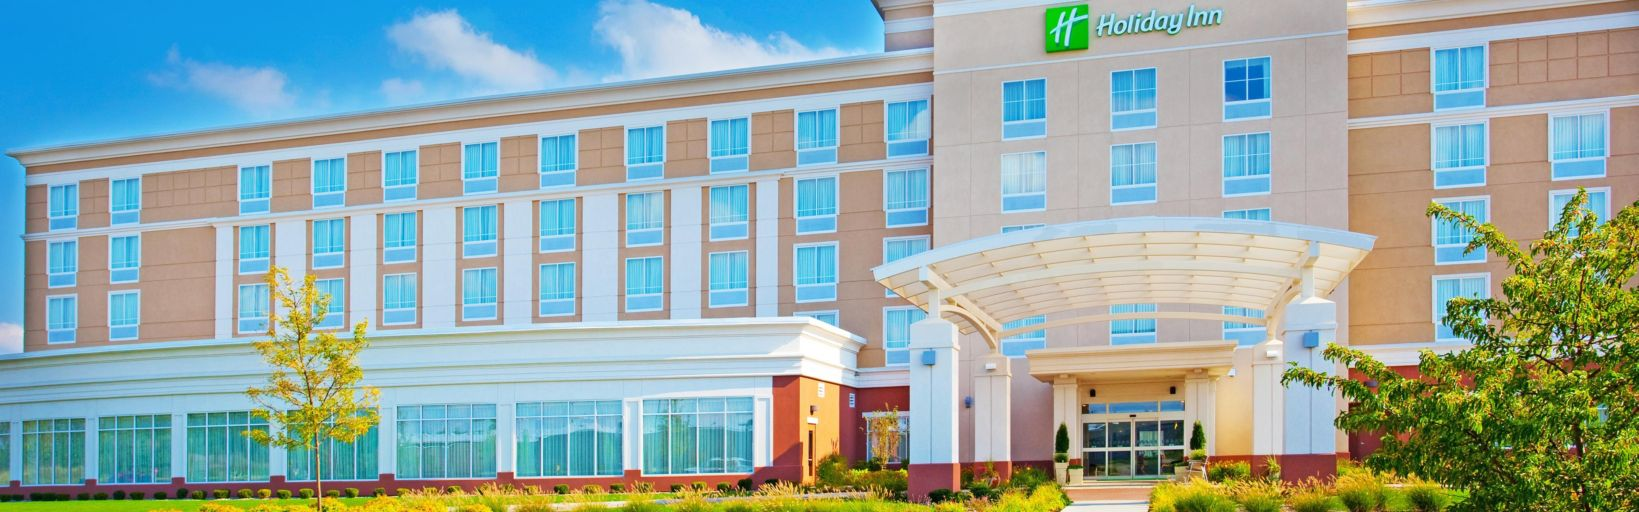 Holiday Inn Battle Creek Hotel by IHG